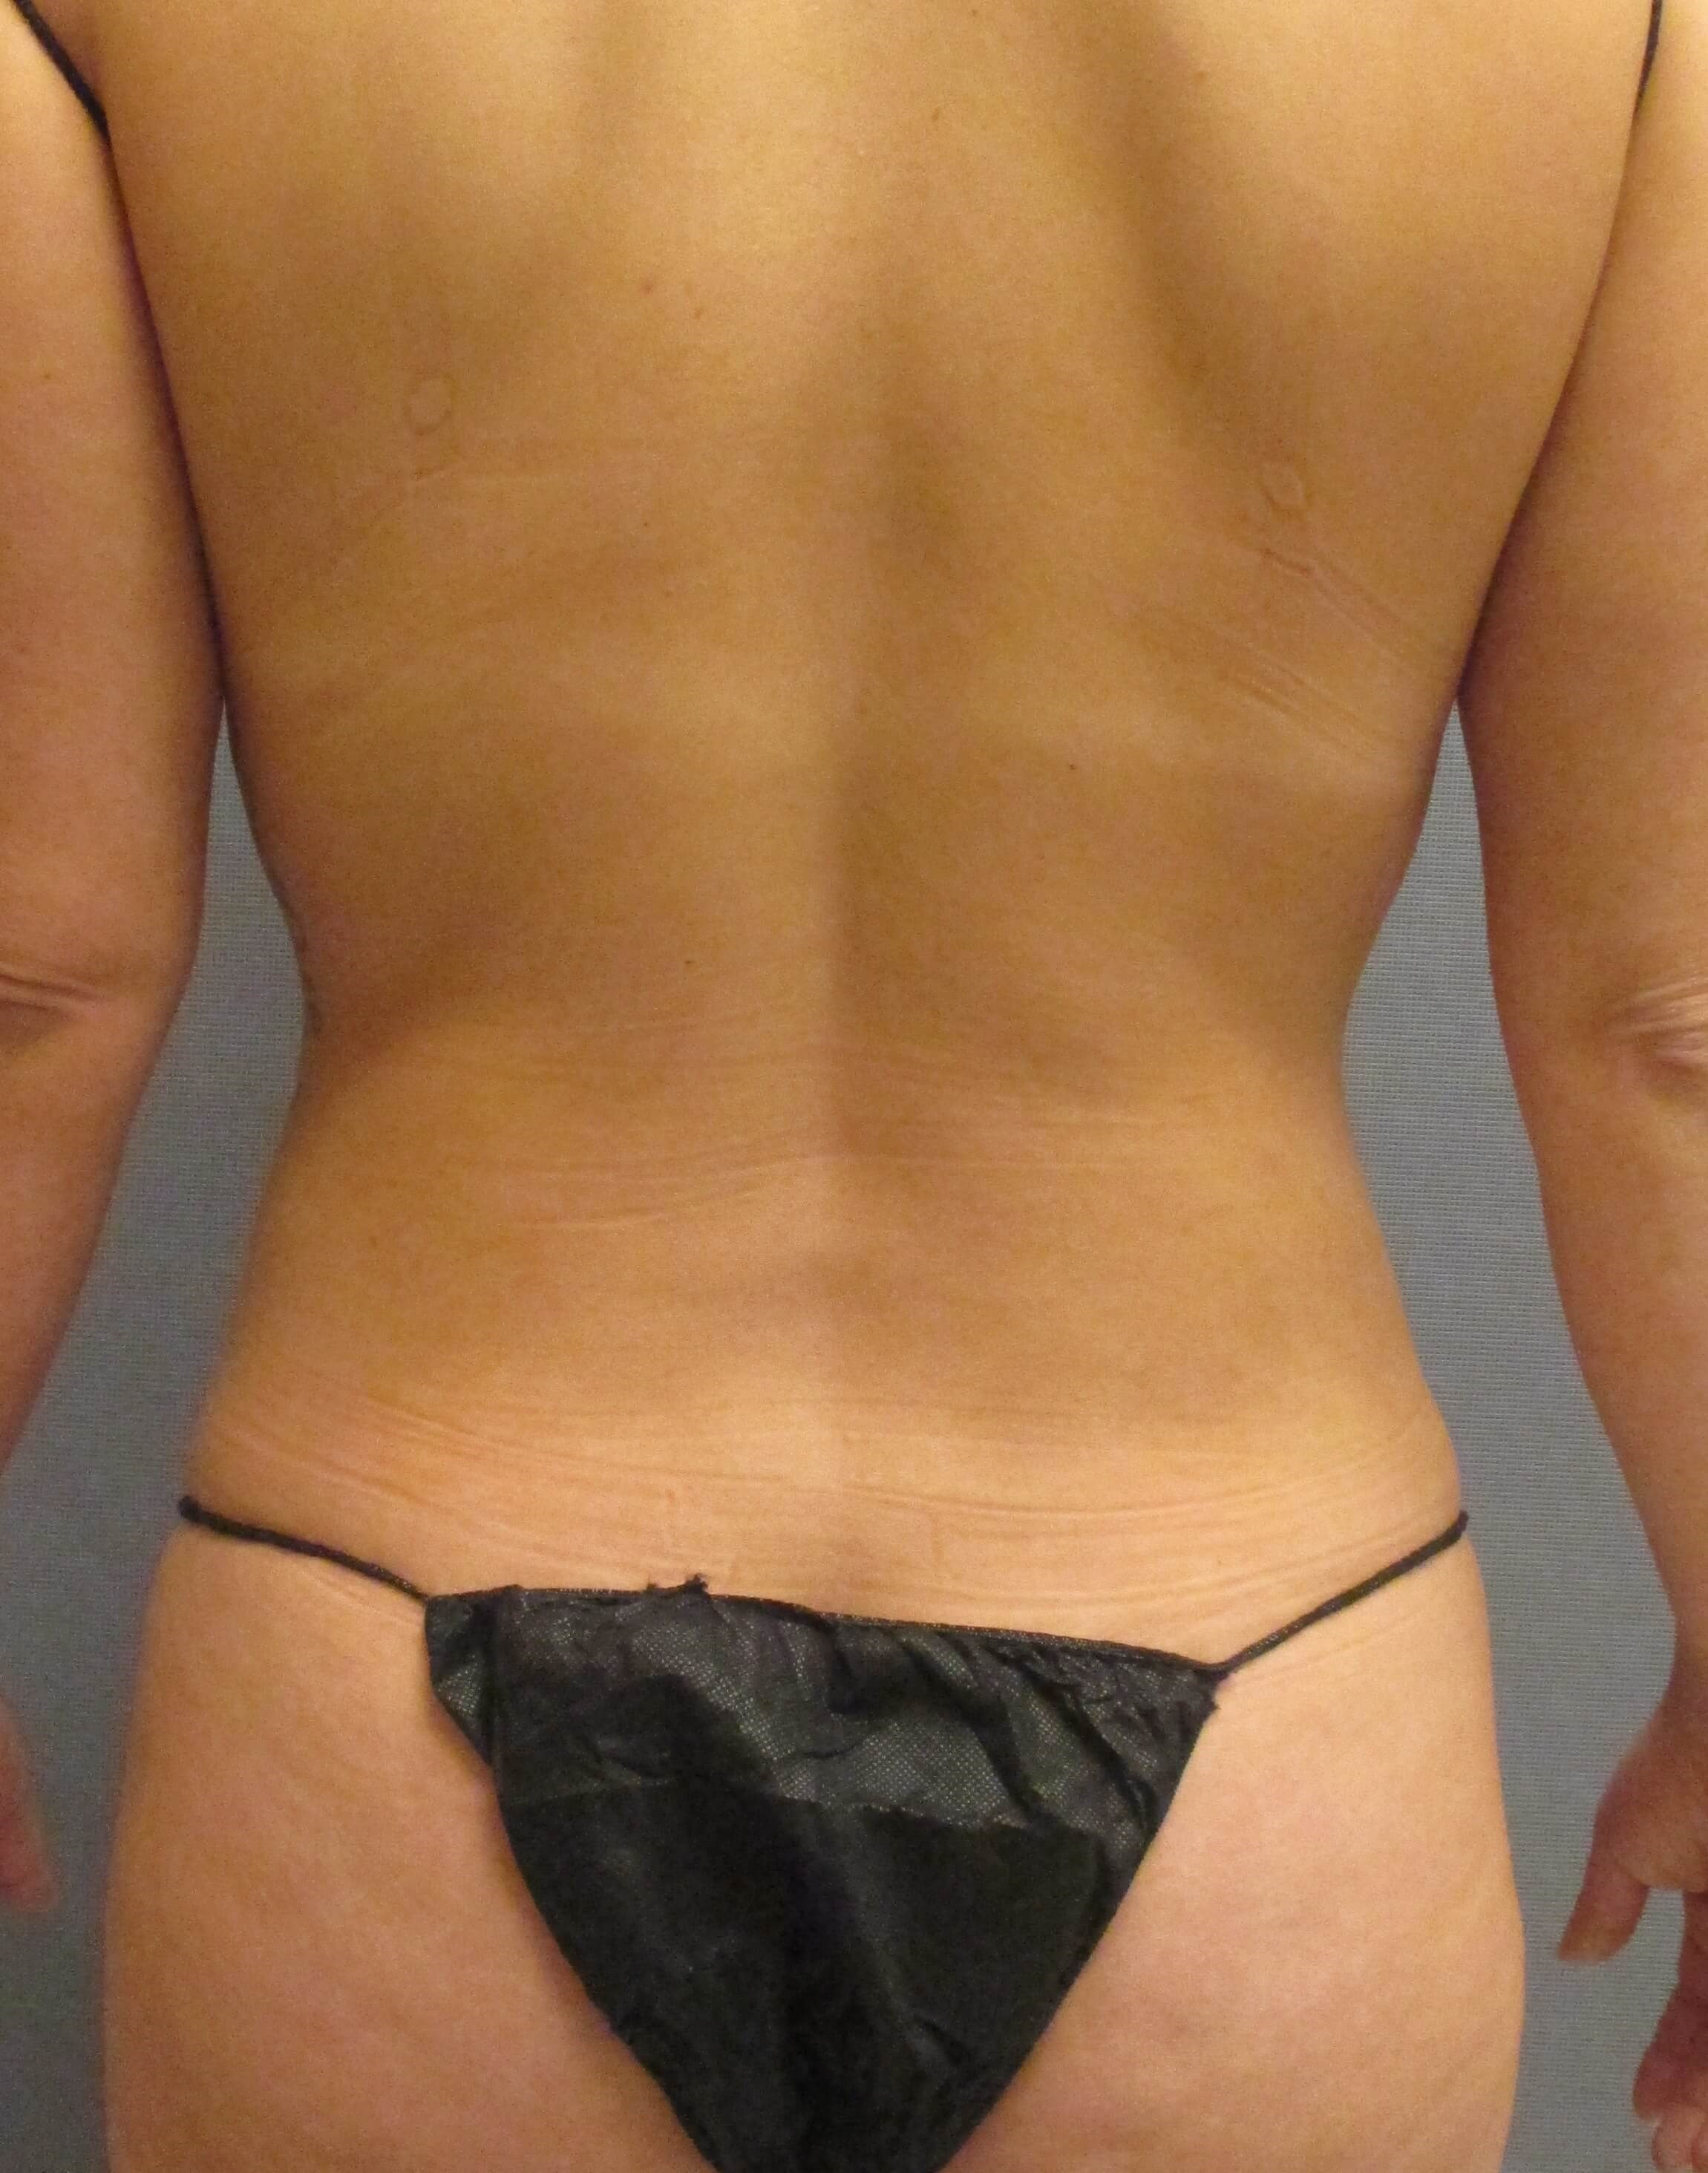 Liposuction of Abdomen & Waist 6 months postop